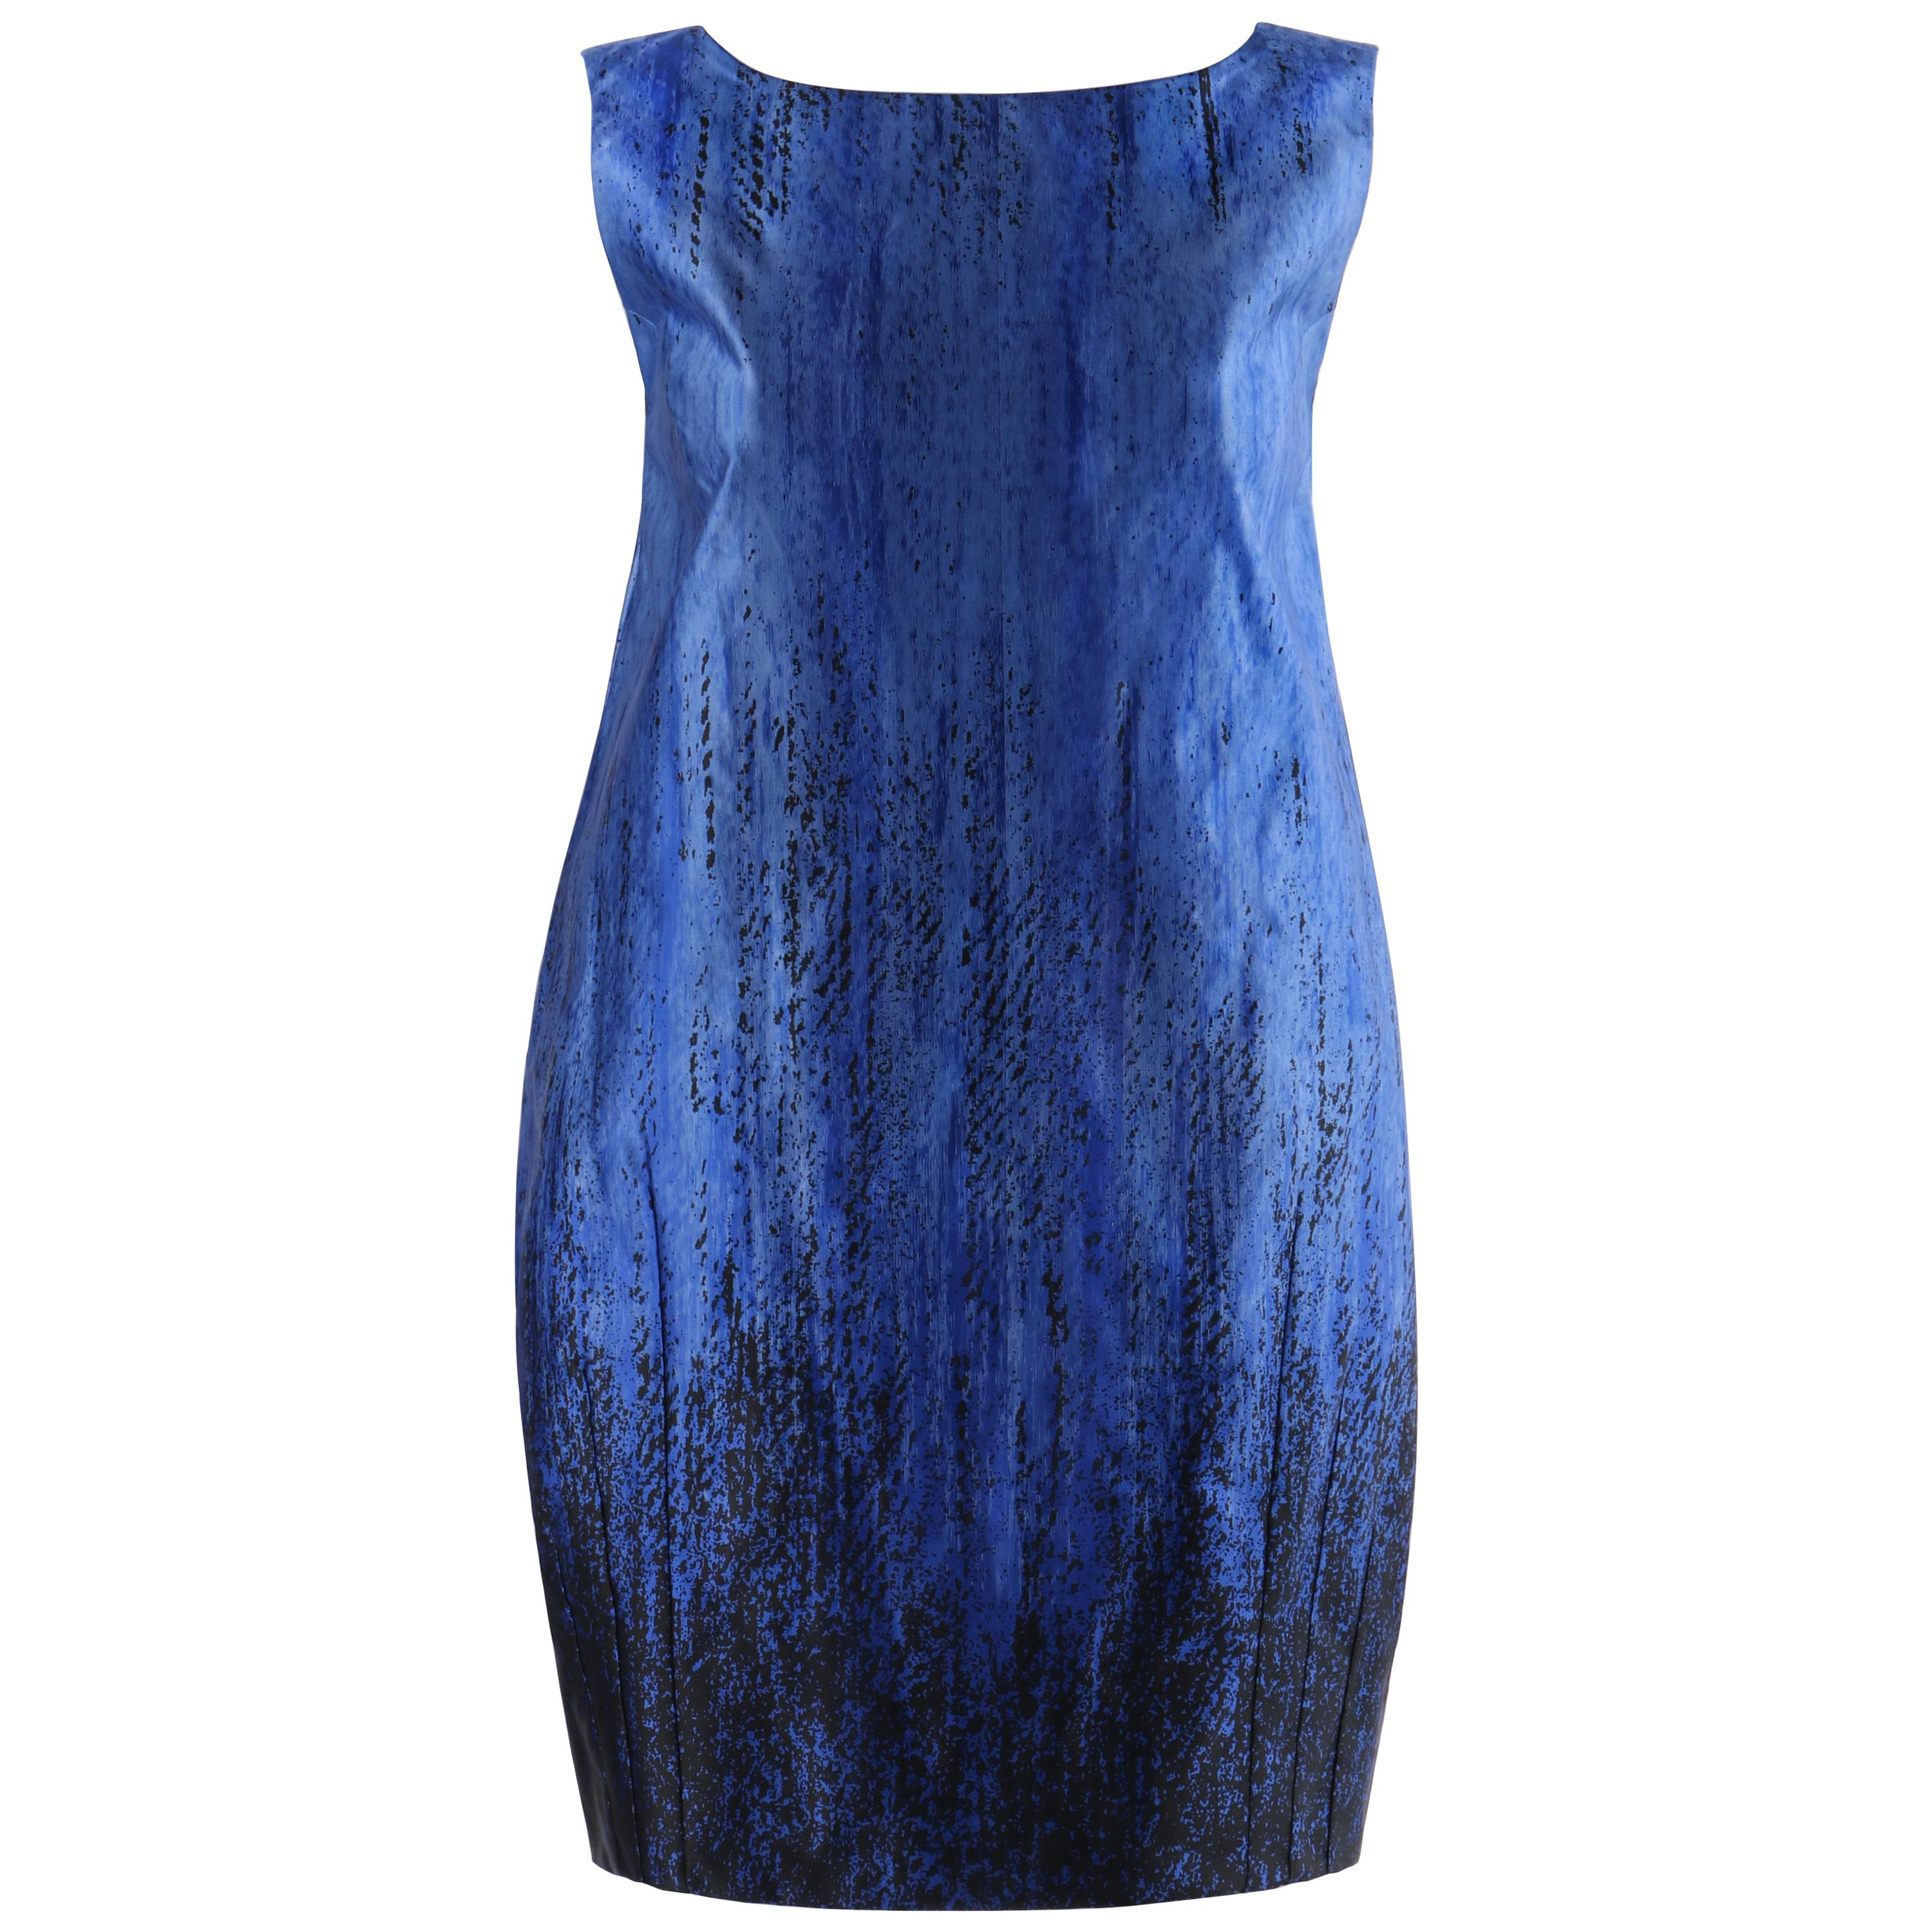 ANDREW GN S/S 2008 Blue Black Ombre Silk Pleat Balloon Dress Patent Leather Bow